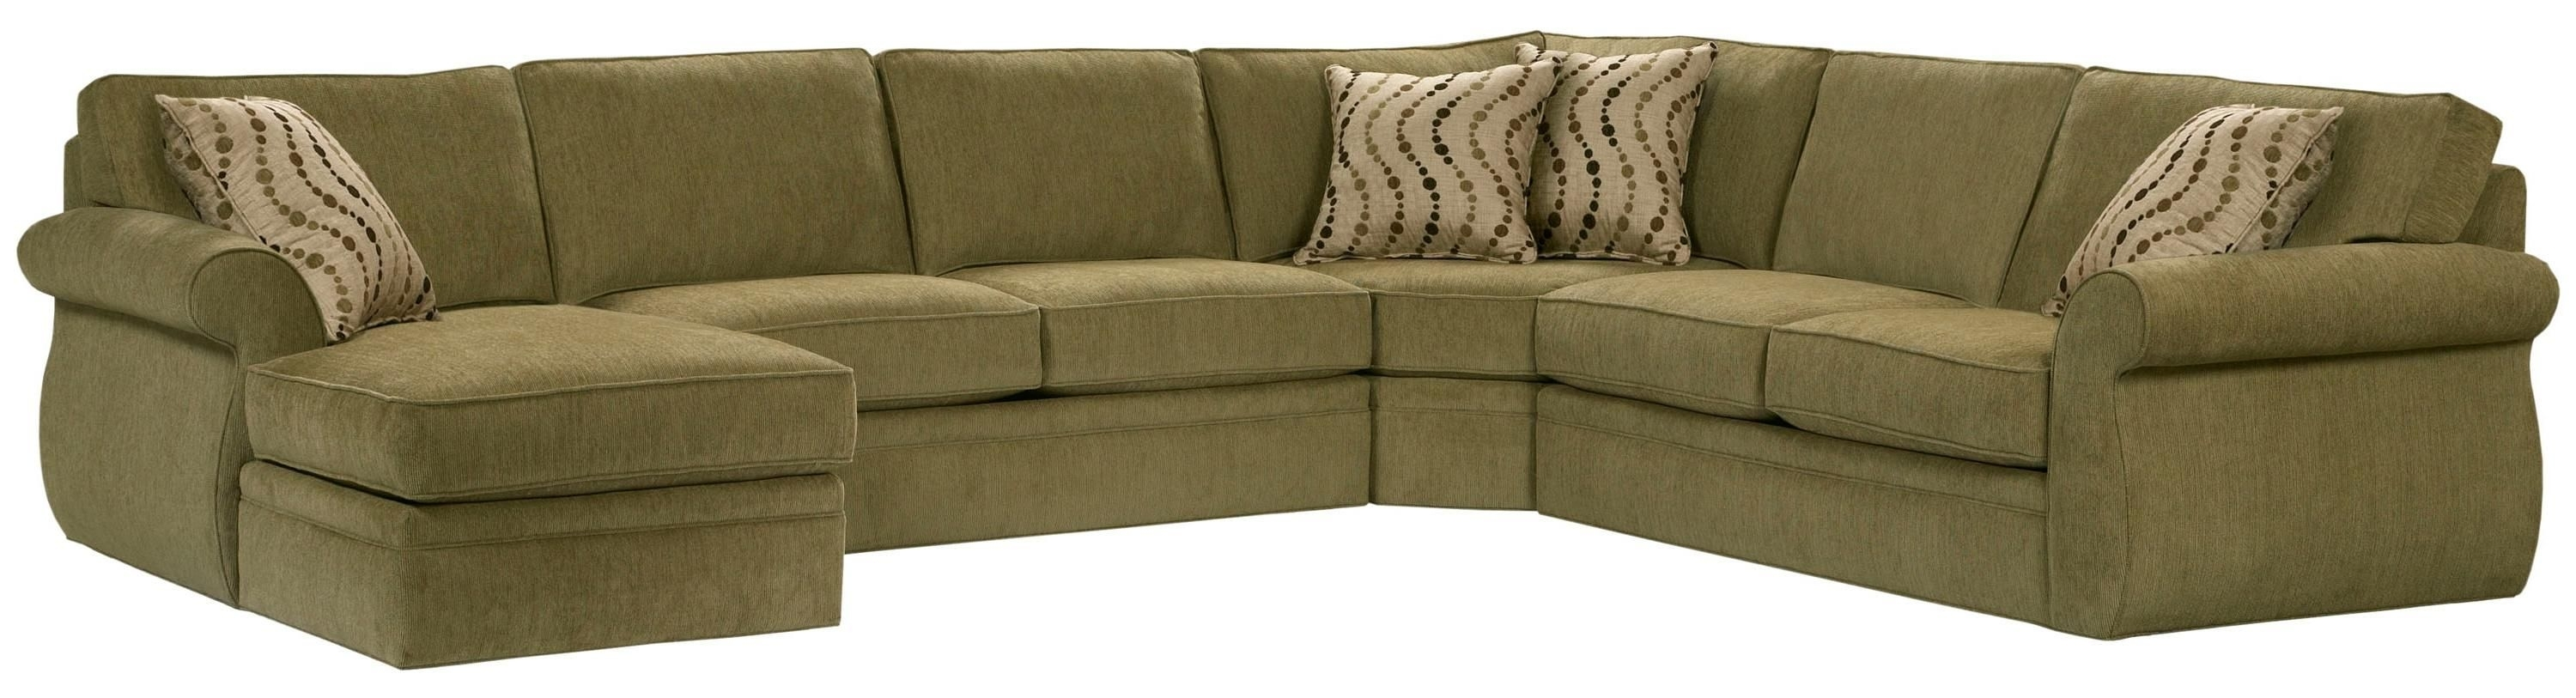 Pin Christina Kingsberry Family Room Ideas Sectional Couch Basement Regarding Lucy Grey 2 Piece Sectionals With Laf Chaise (View 25 of 25)